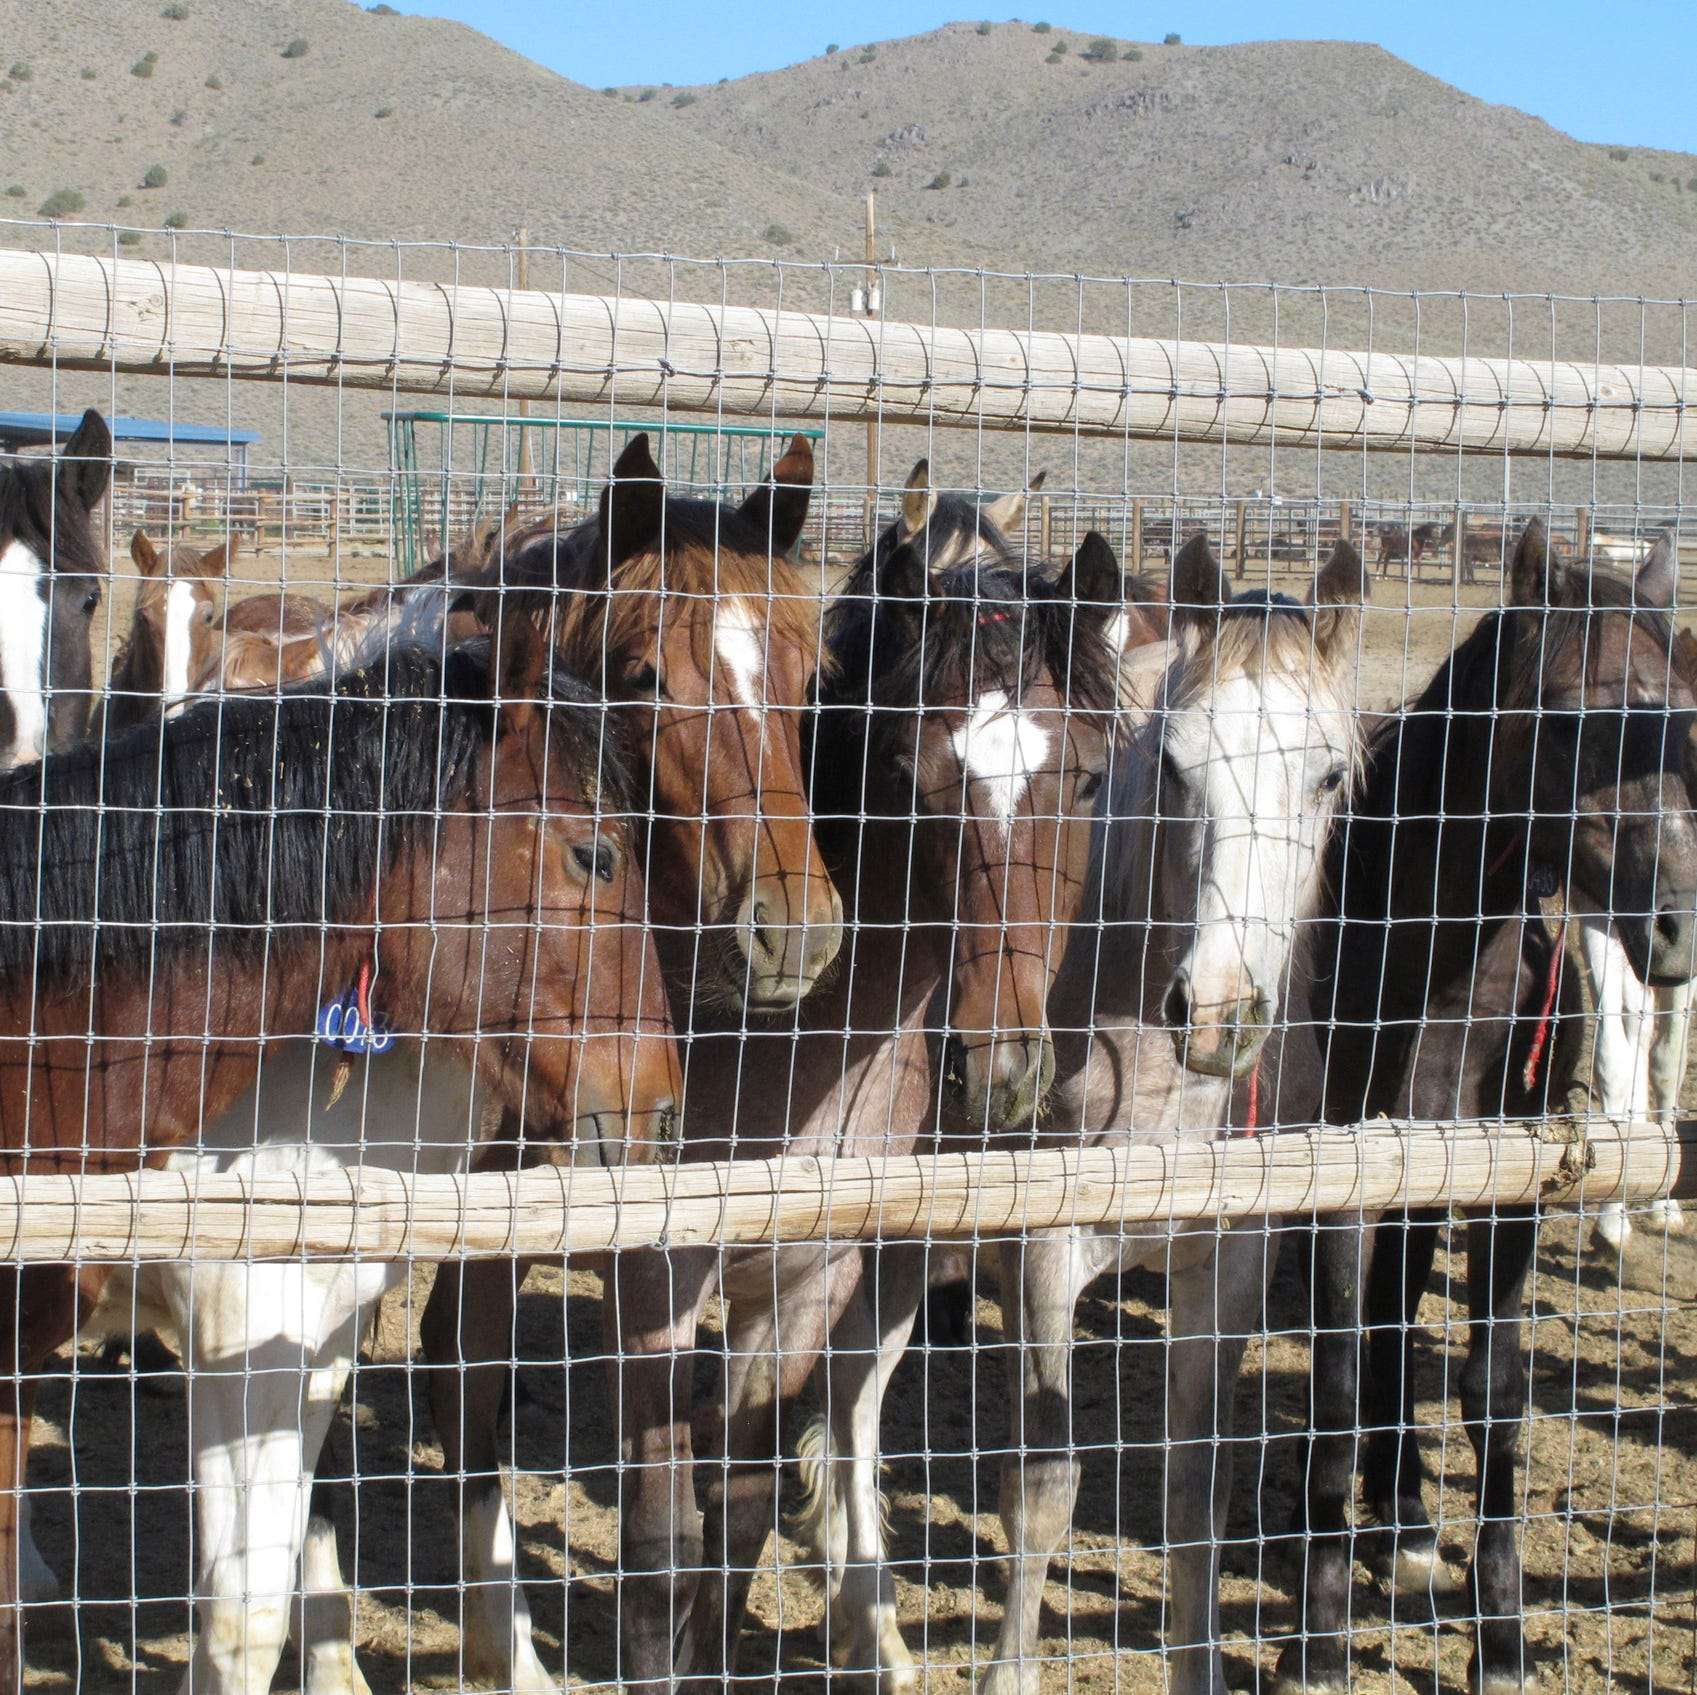 Agency built pen for possible horse slaughter